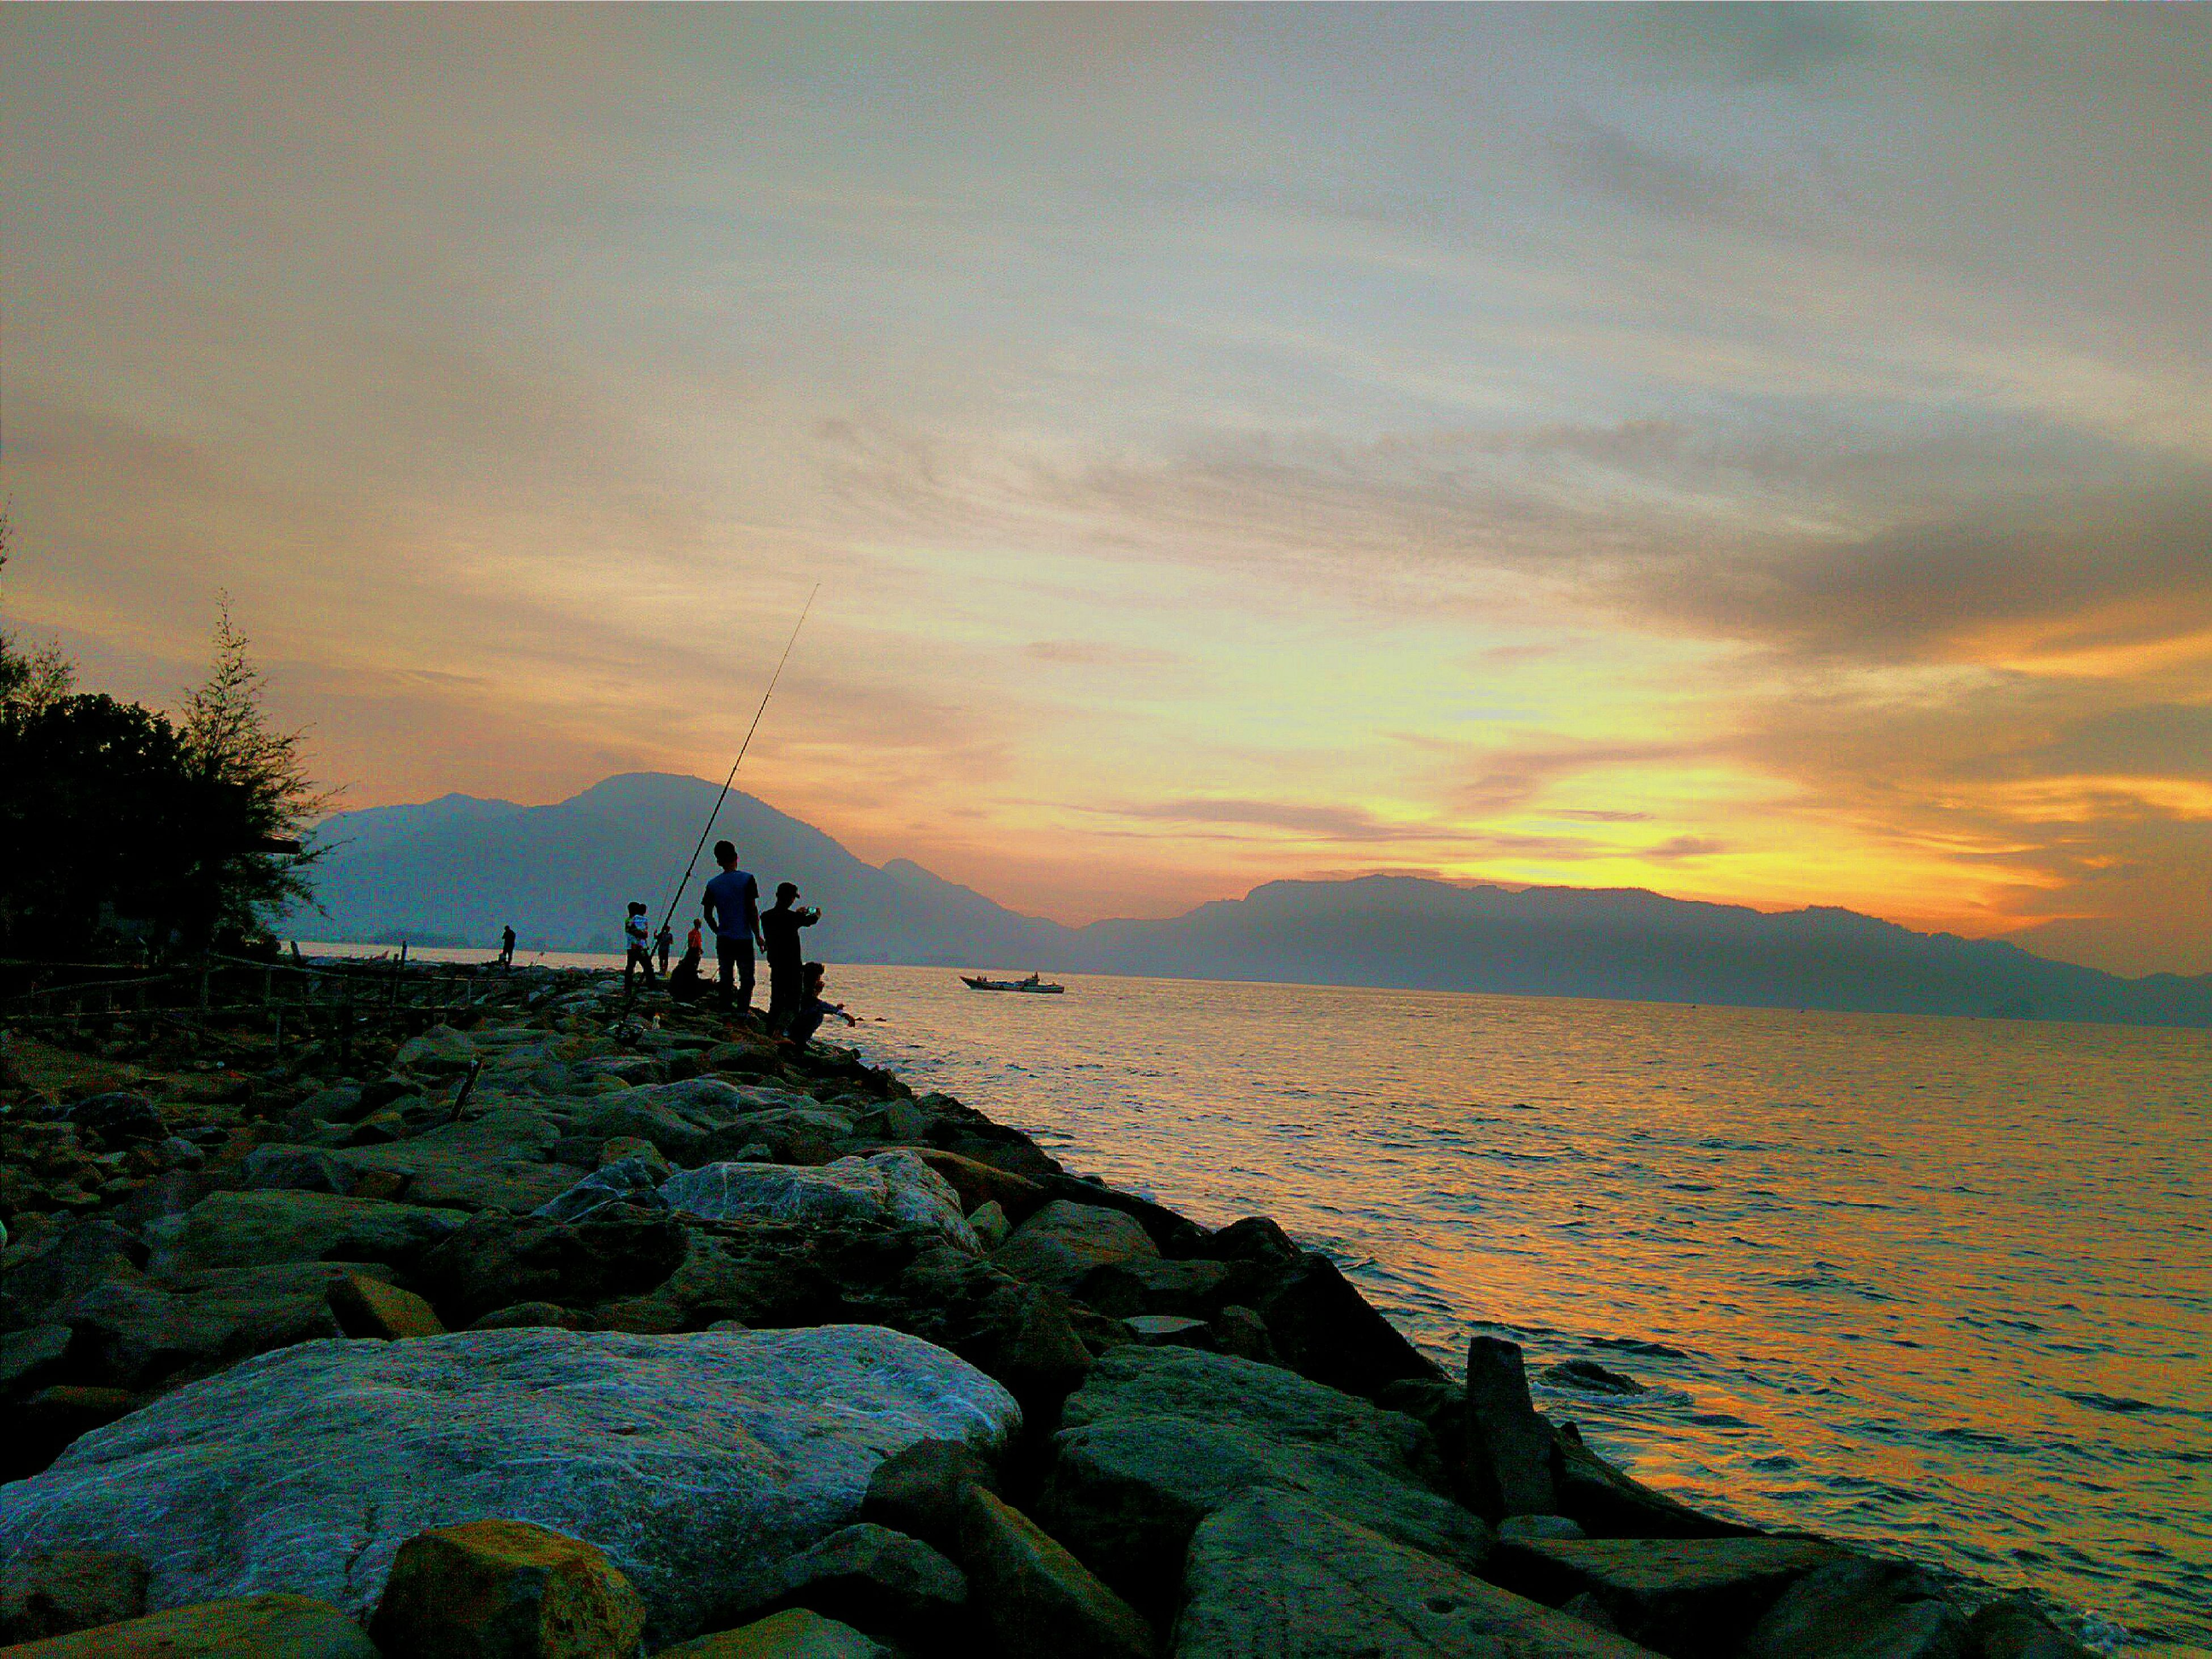 water, sunset, scenics, sea, sky, beauty in nature, tranquility, tranquil scene, silhouette, nature, rock - object, idyllic, orange color, cloud - sky, men, leisure activity, lifestyles, horizon over water, transportation